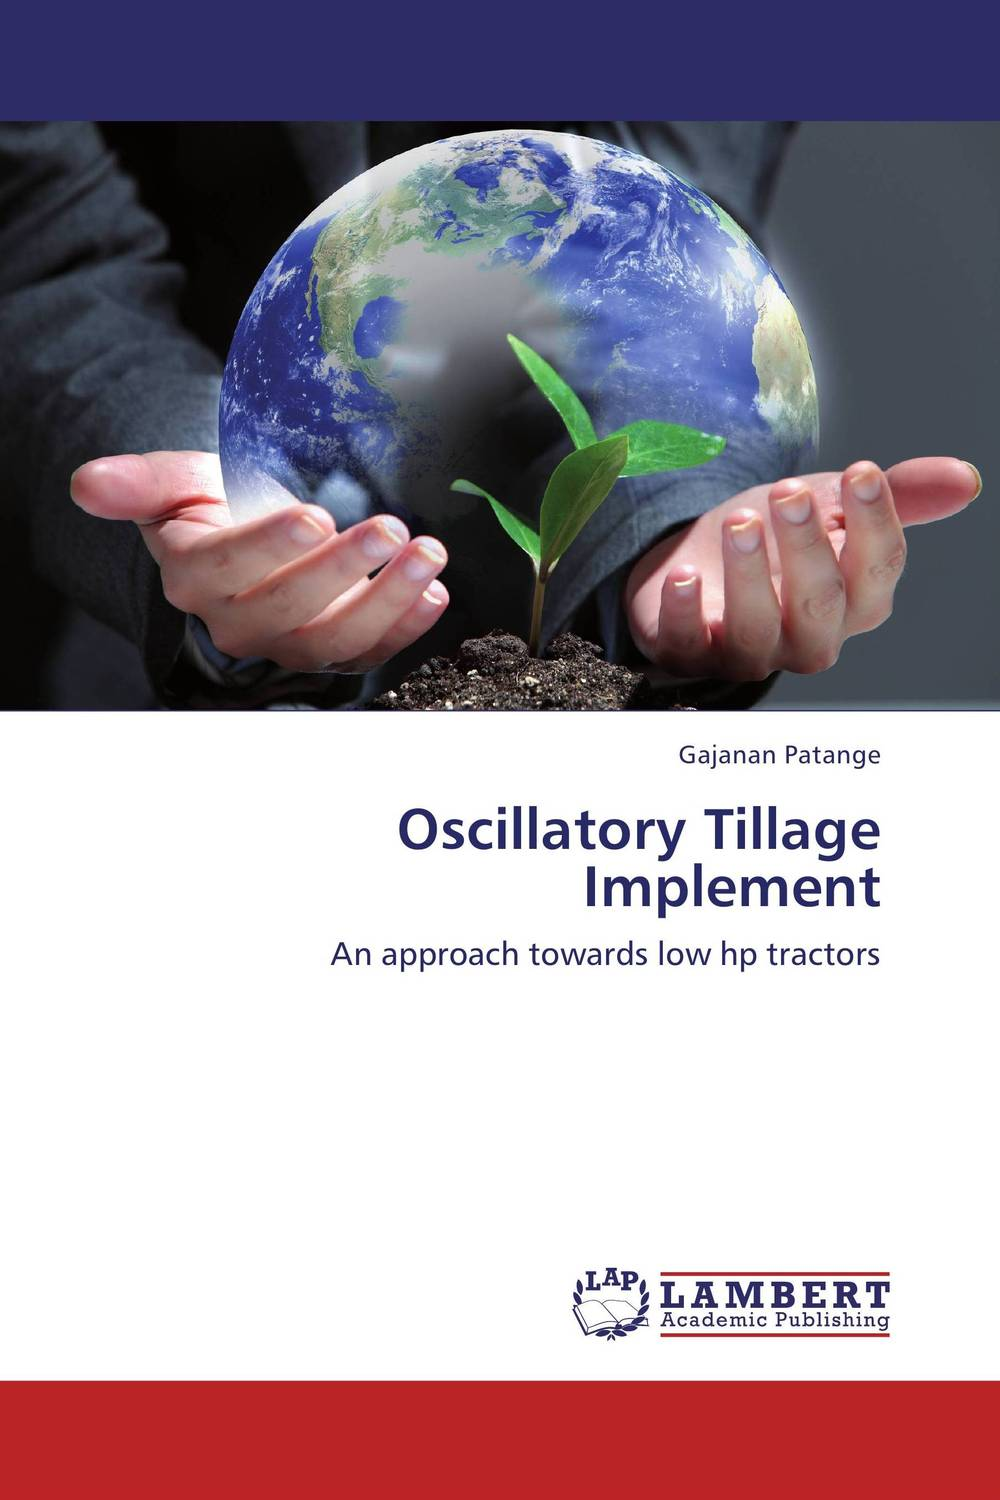 Oscillatory Tillage Implement driven to distraction